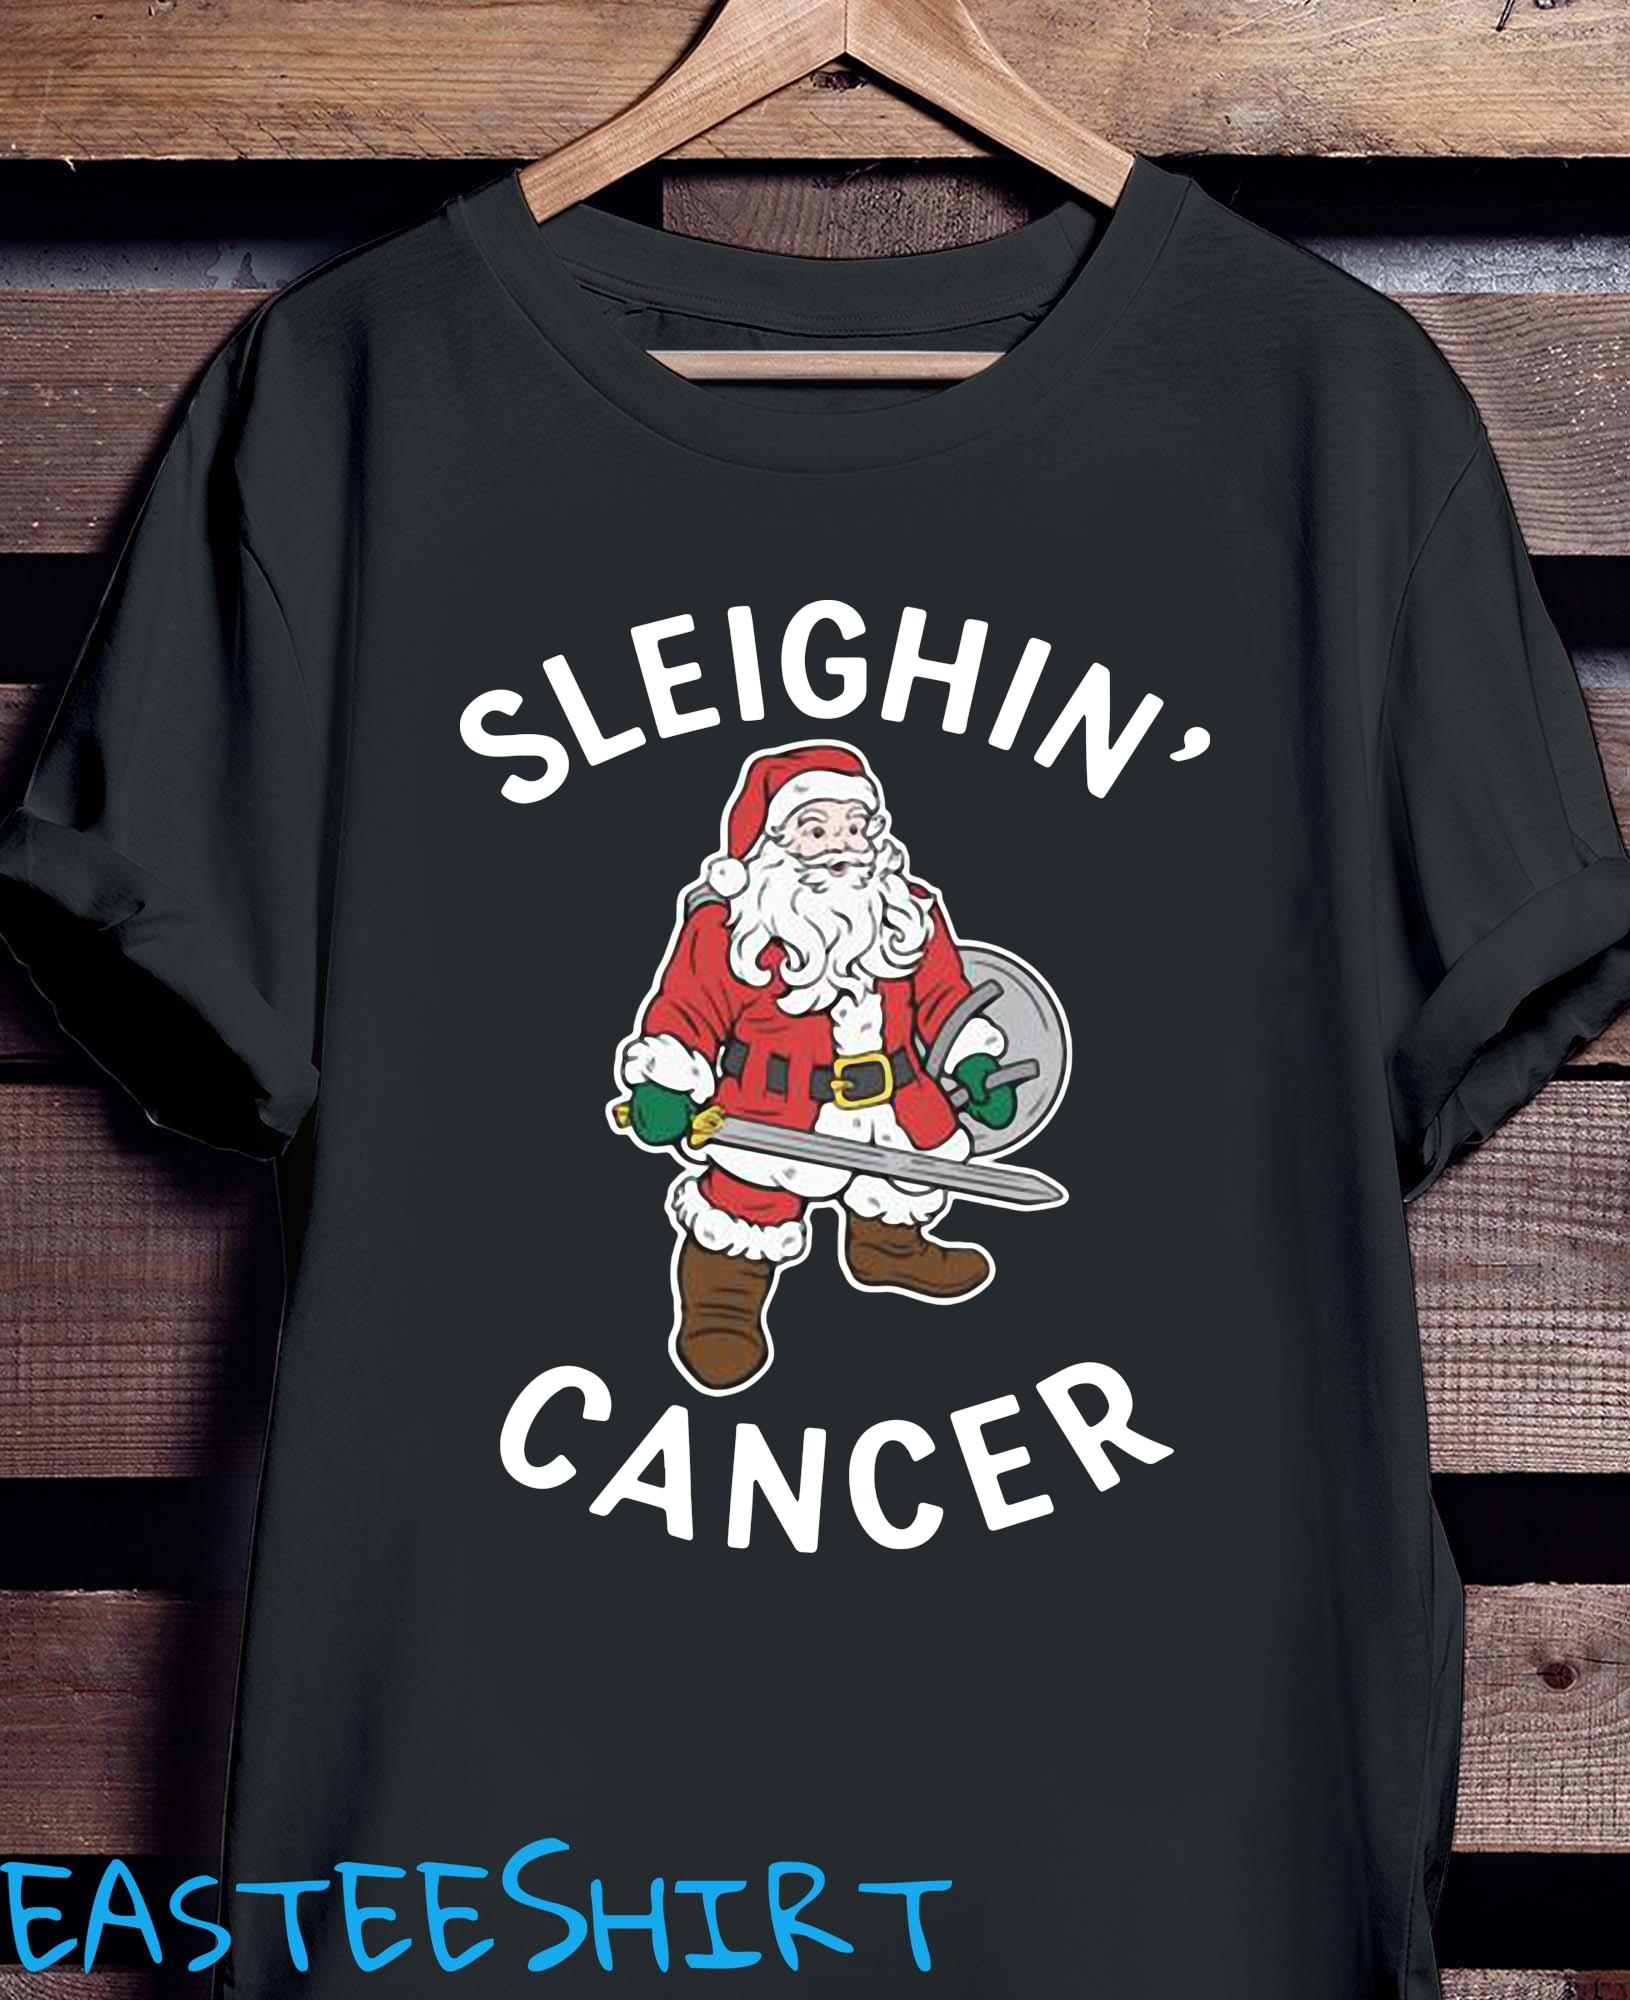 Santa Claus Sleighin' Cancer Shirt